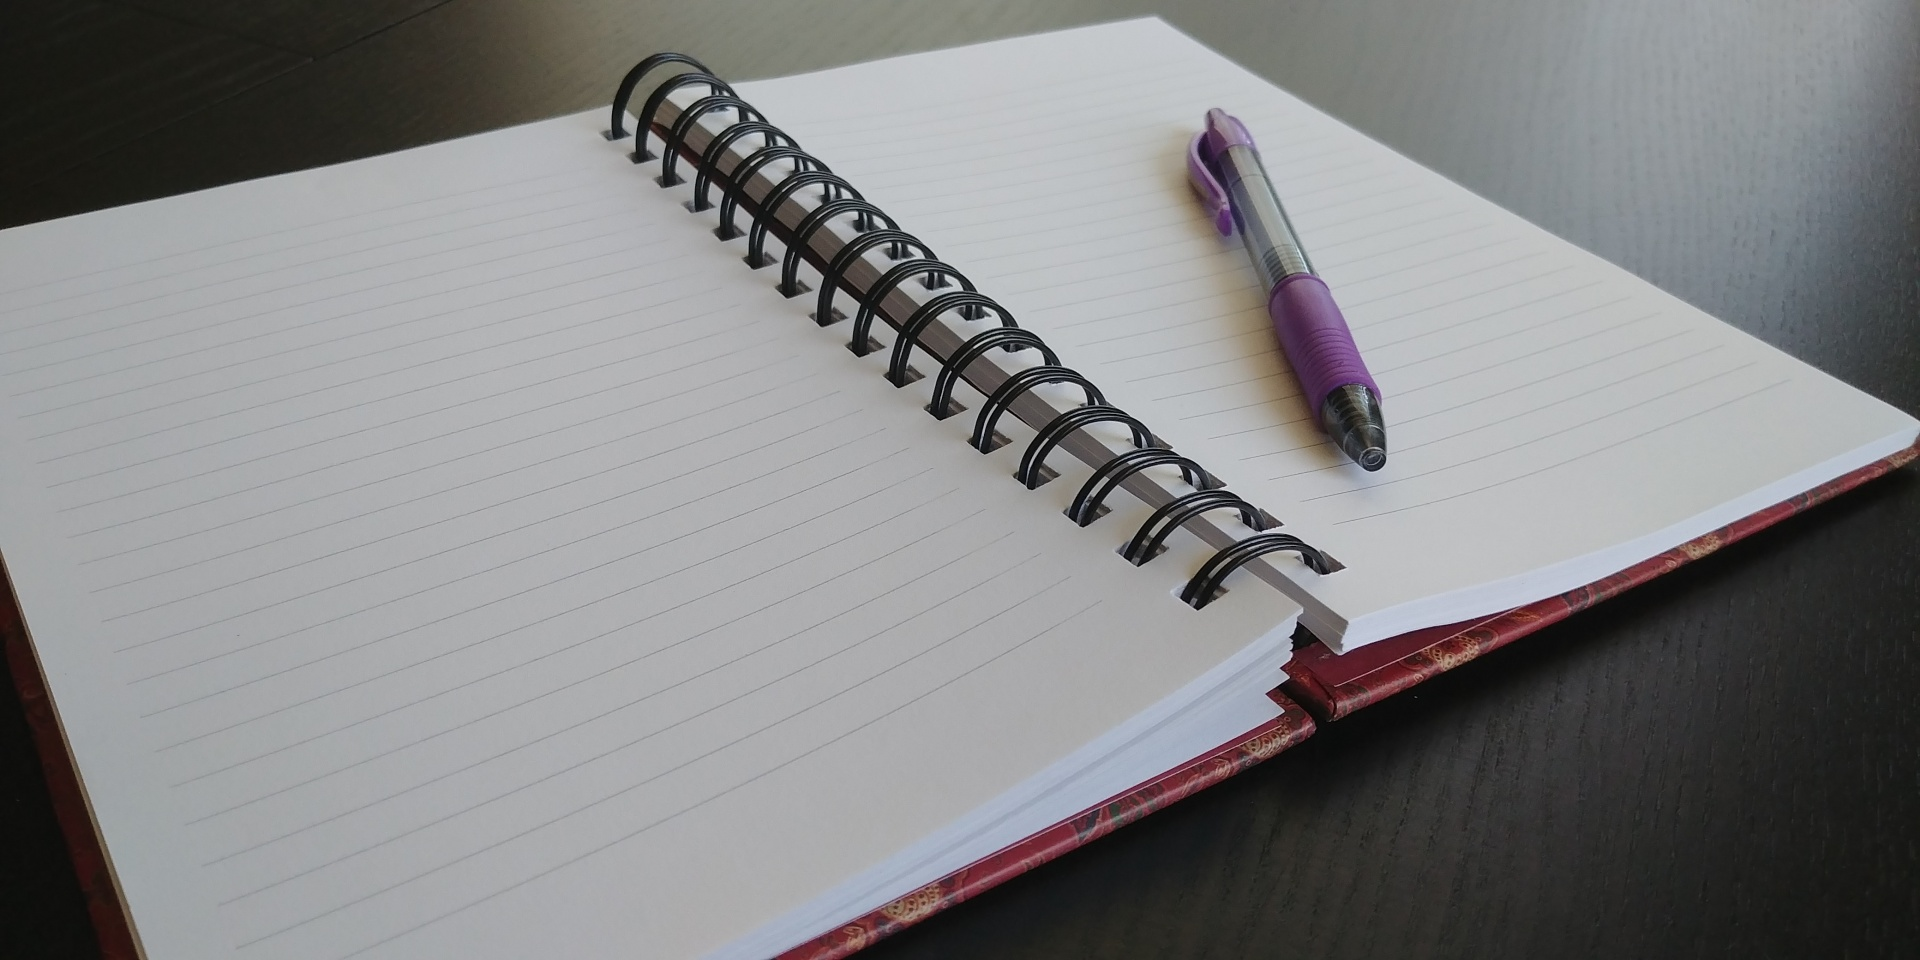 A public-domain photo of an open notebook.